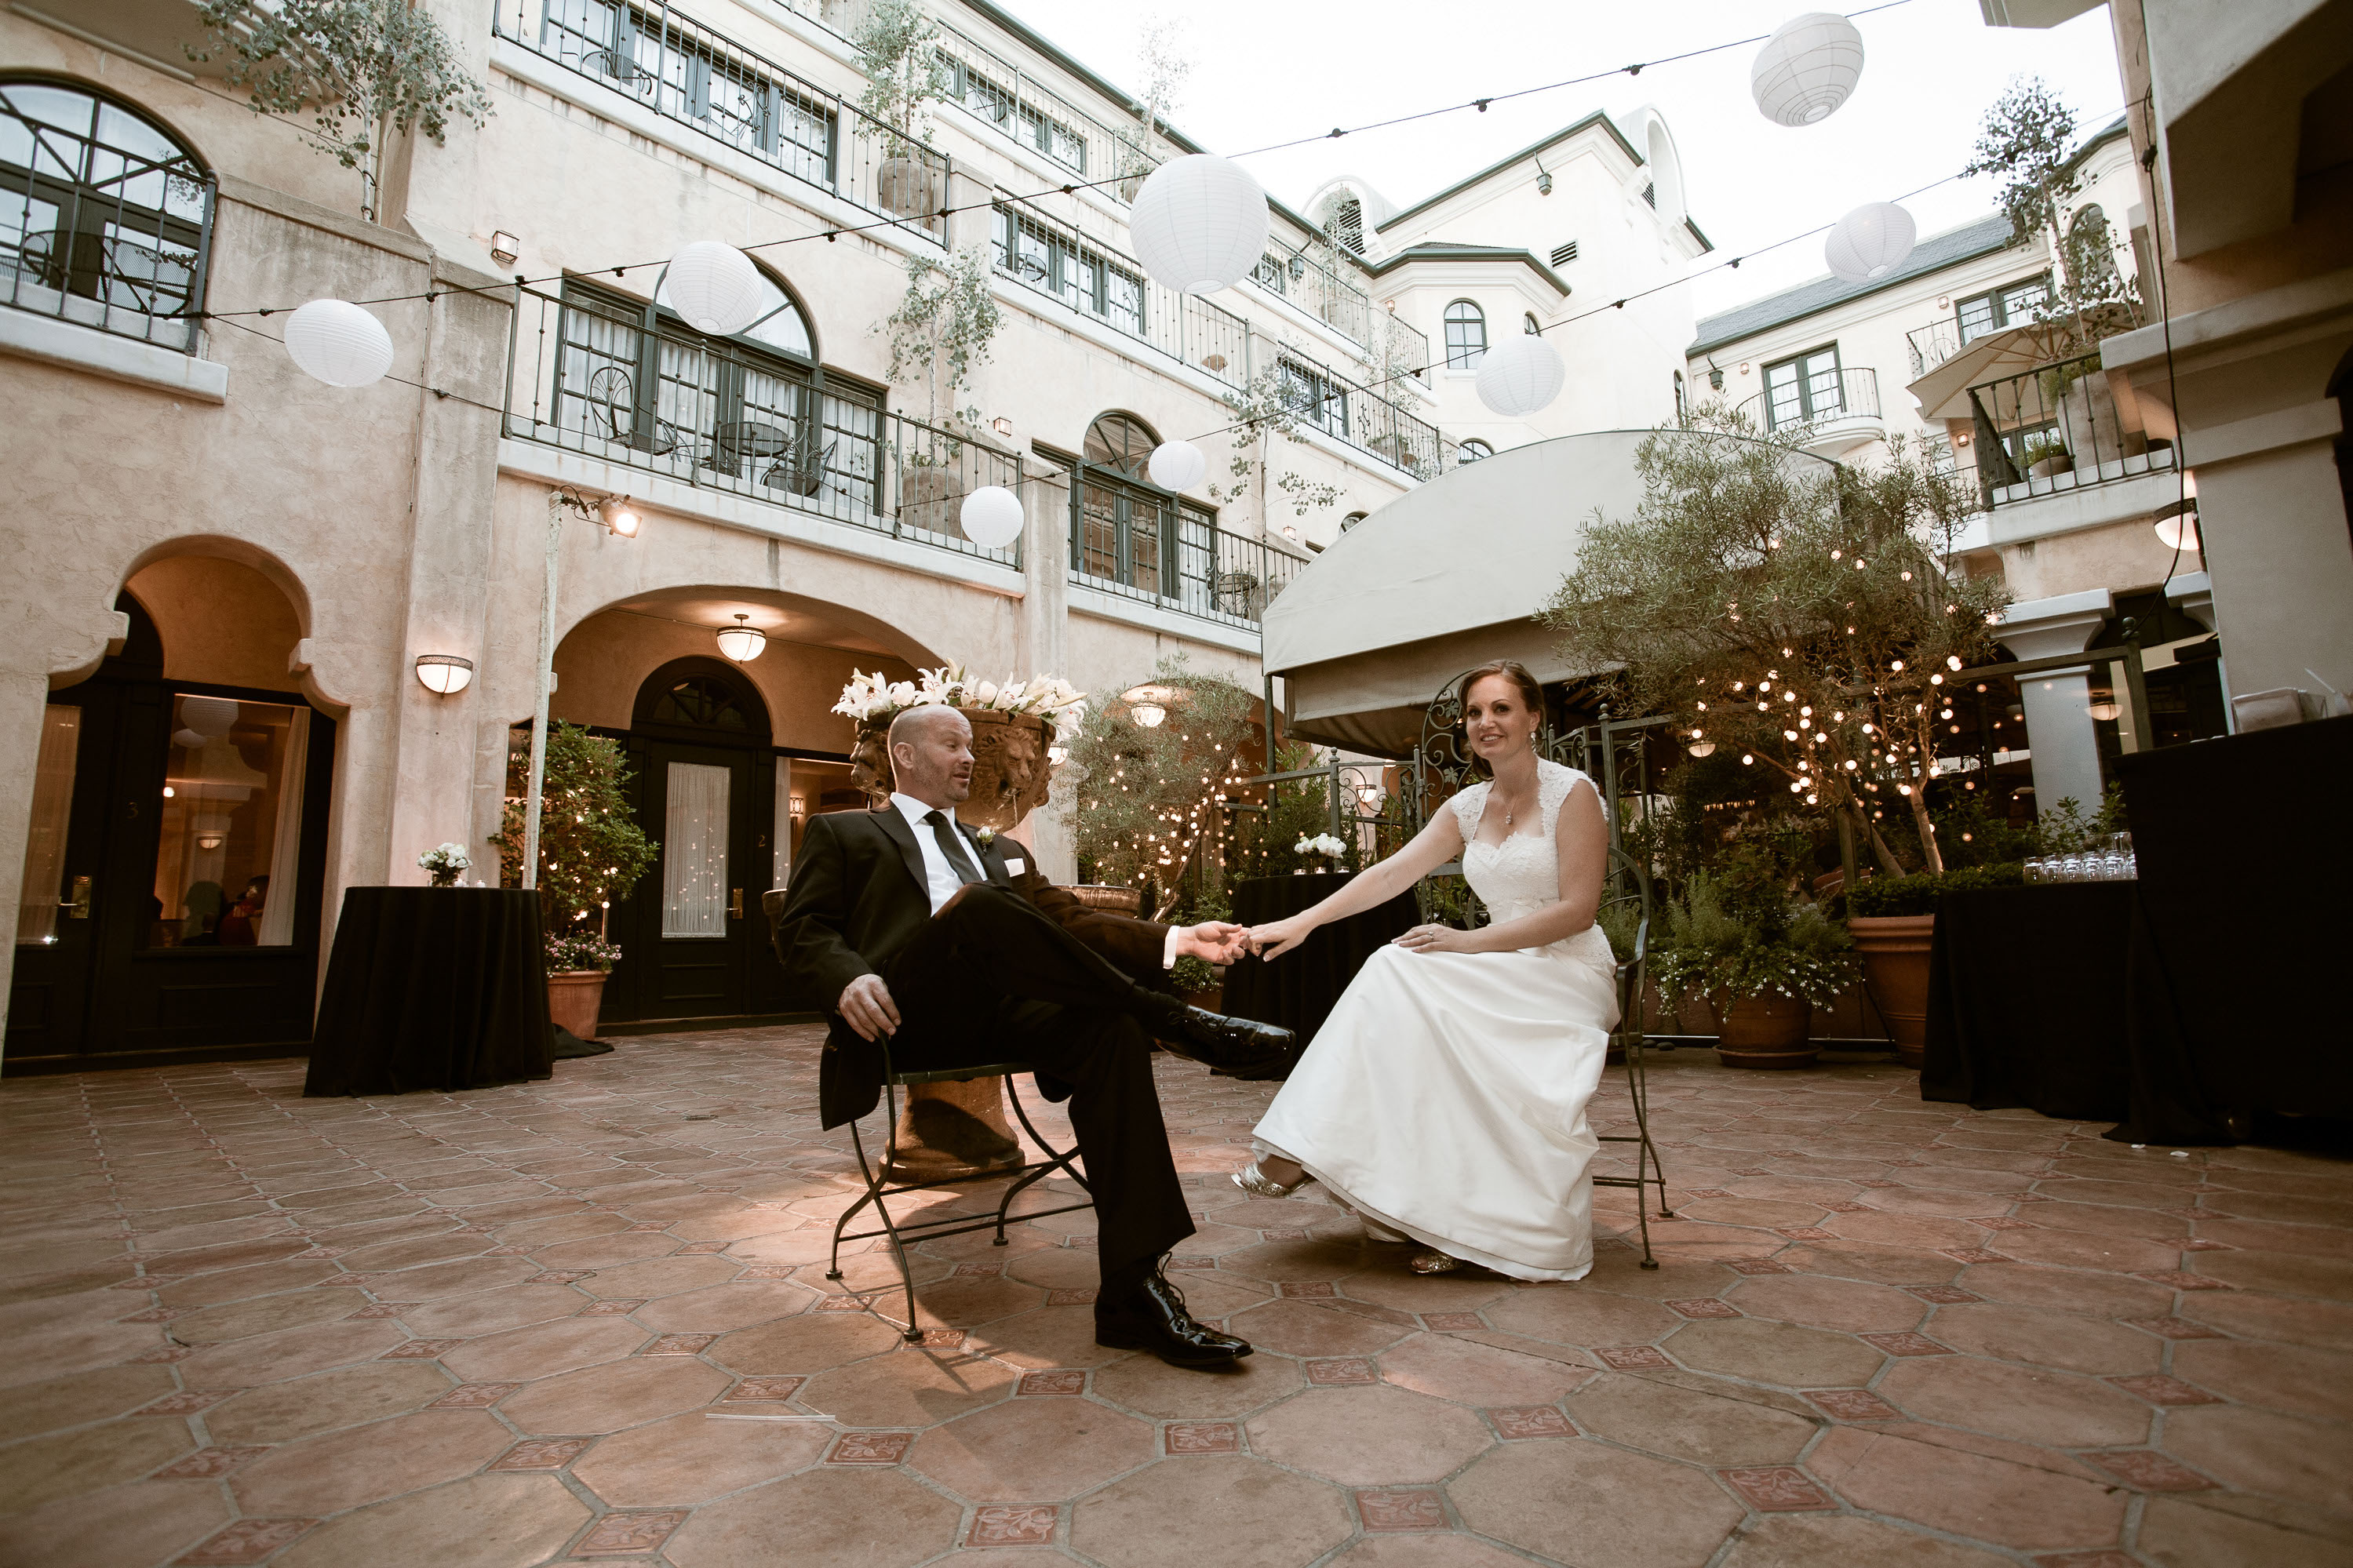 The Bride And Groom Relax Together In The Courtyard At The Garden Court  Hotel In Palo